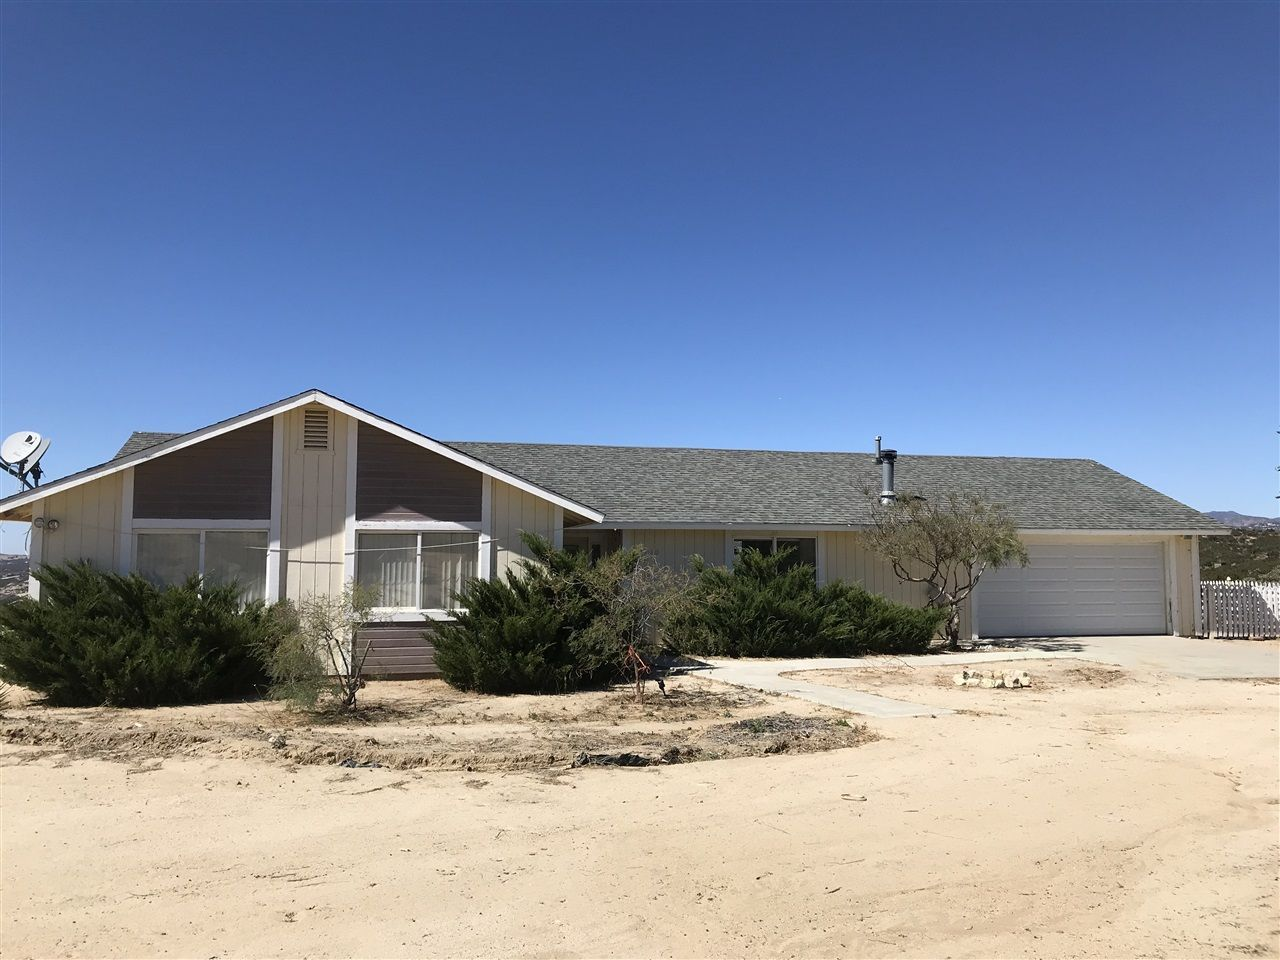 Main Photo: CAMPO House for sale : 3 bedrooms : 34060 Shockey Truck Trl